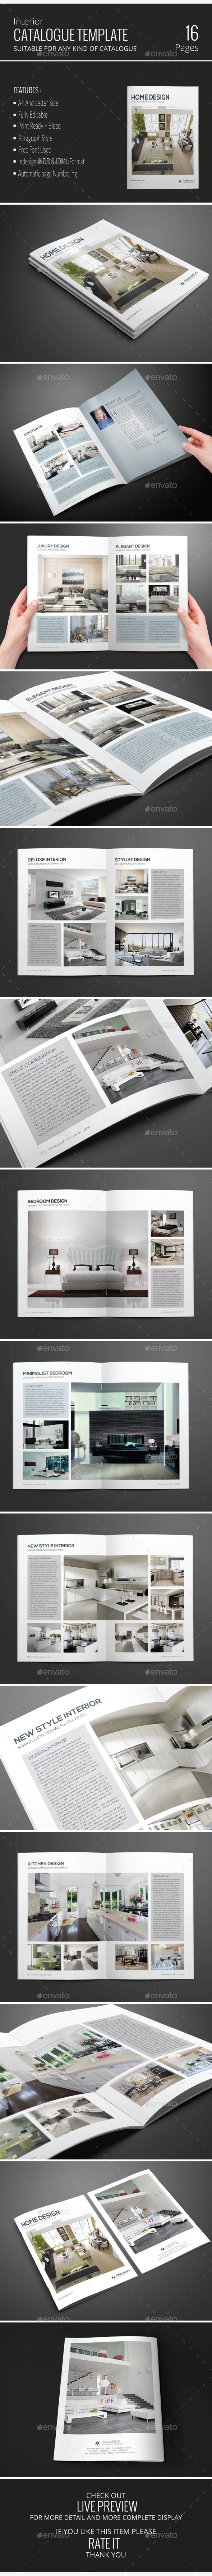 Catalog Template Vol. 03 - Catalogs Brochures